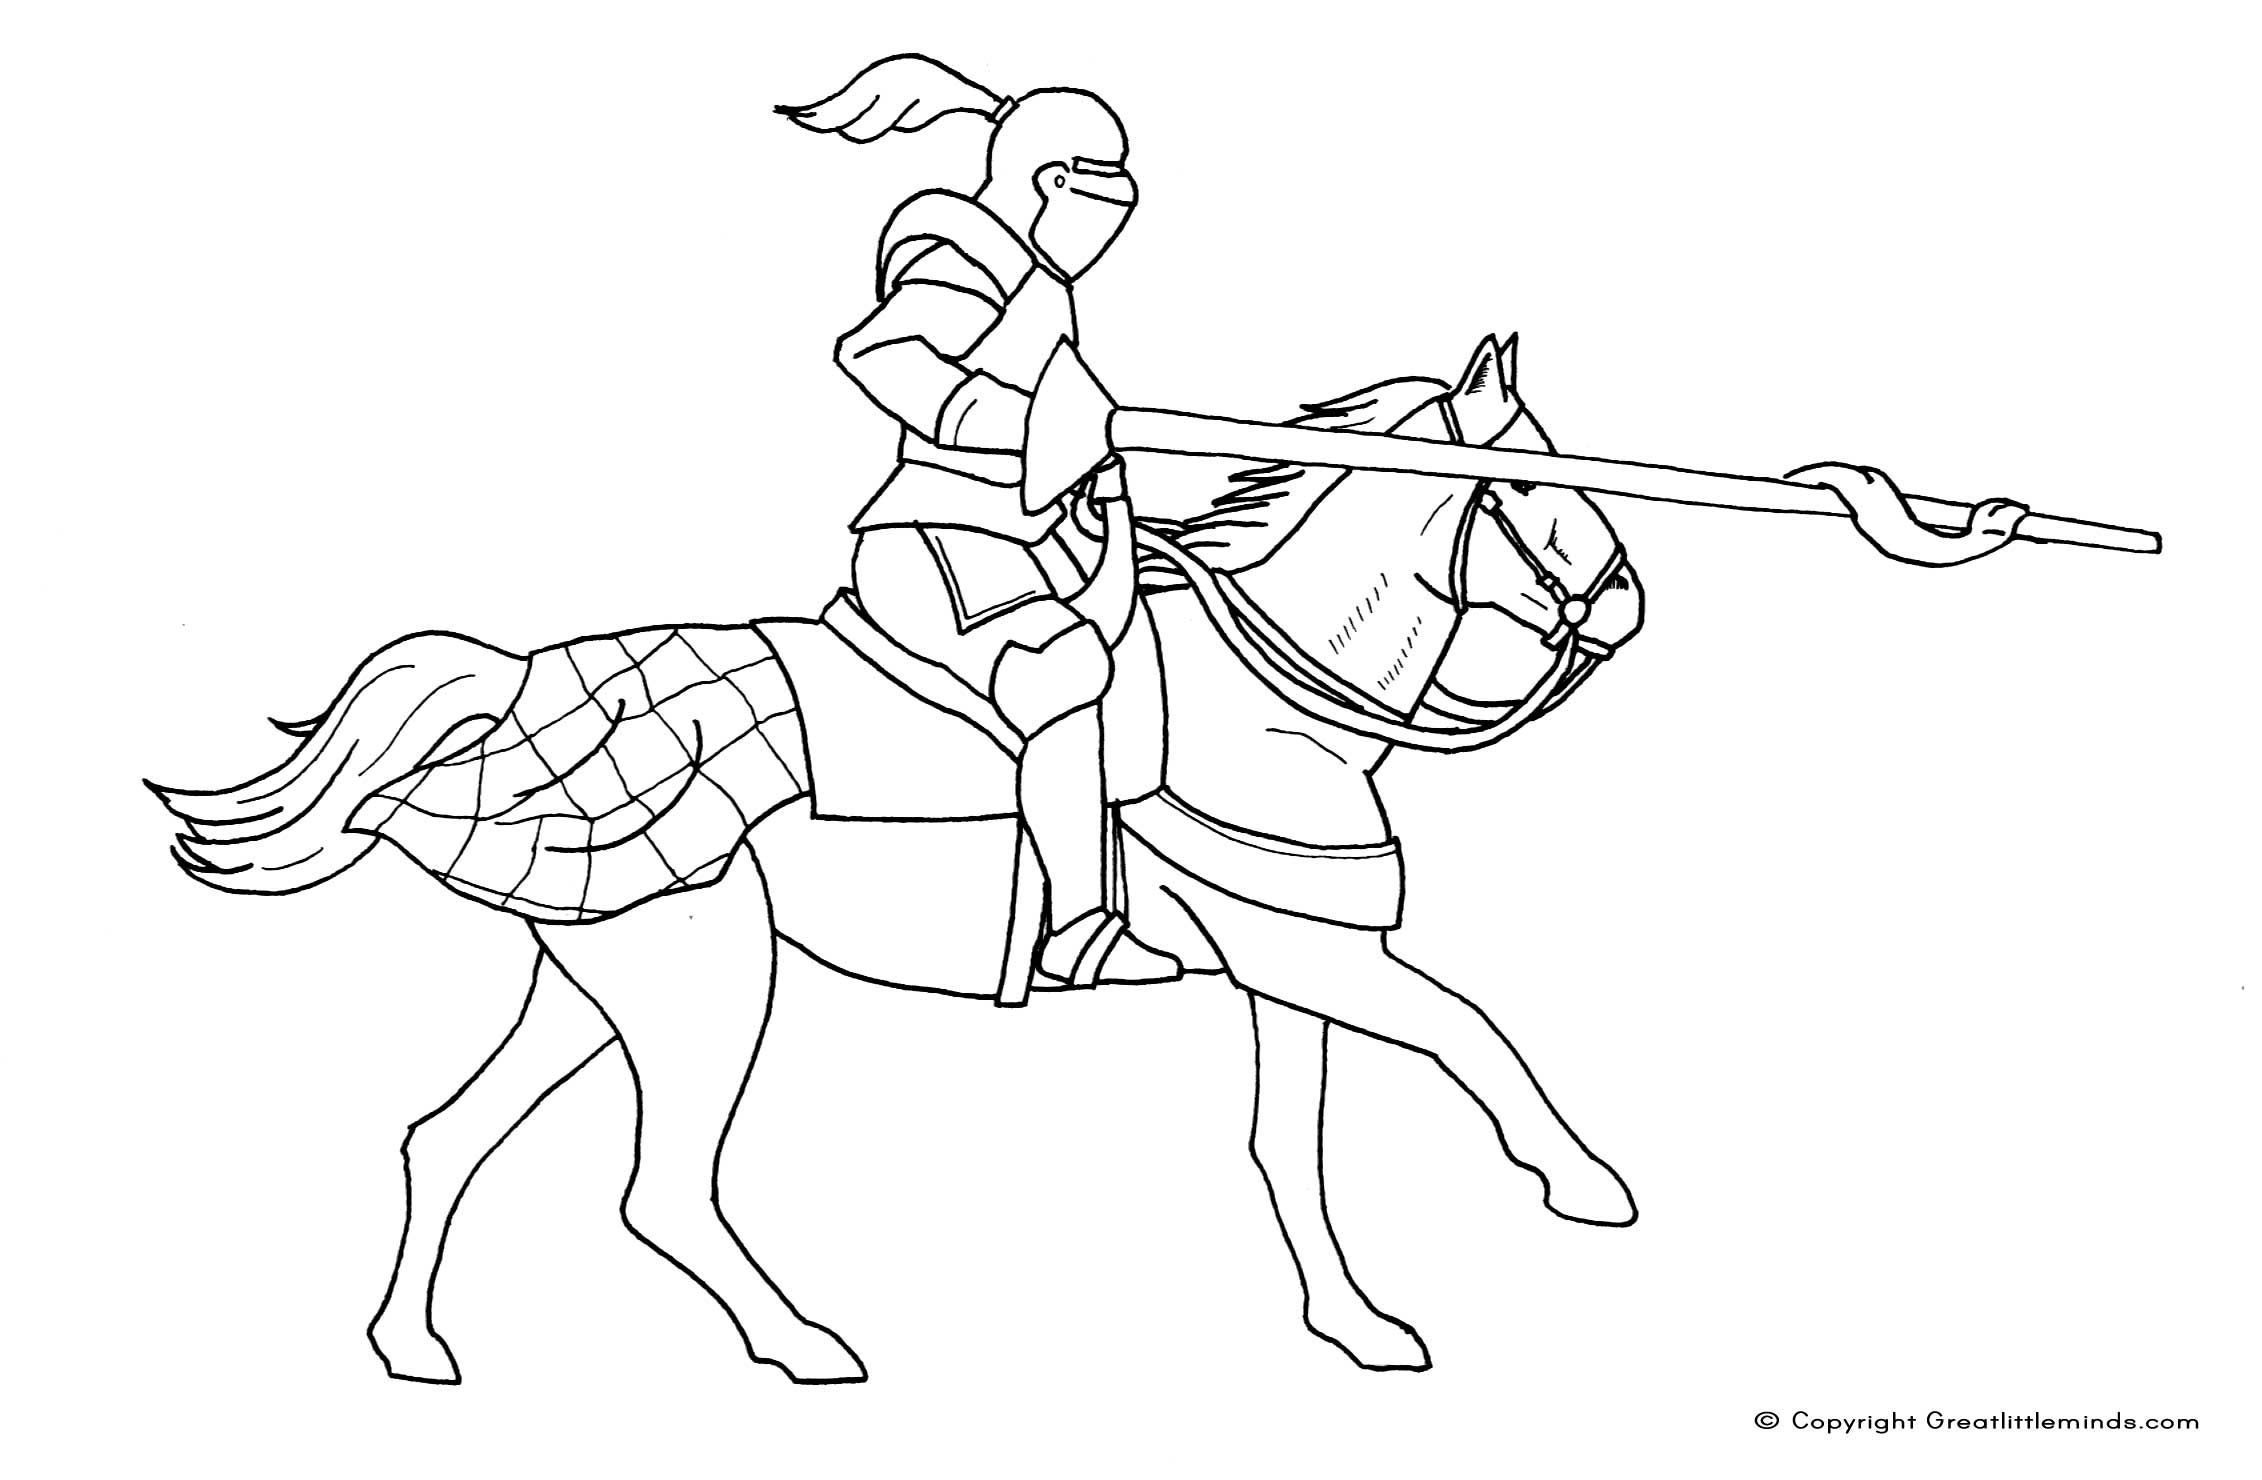 Dragon coloring pages realistic knight colouring page